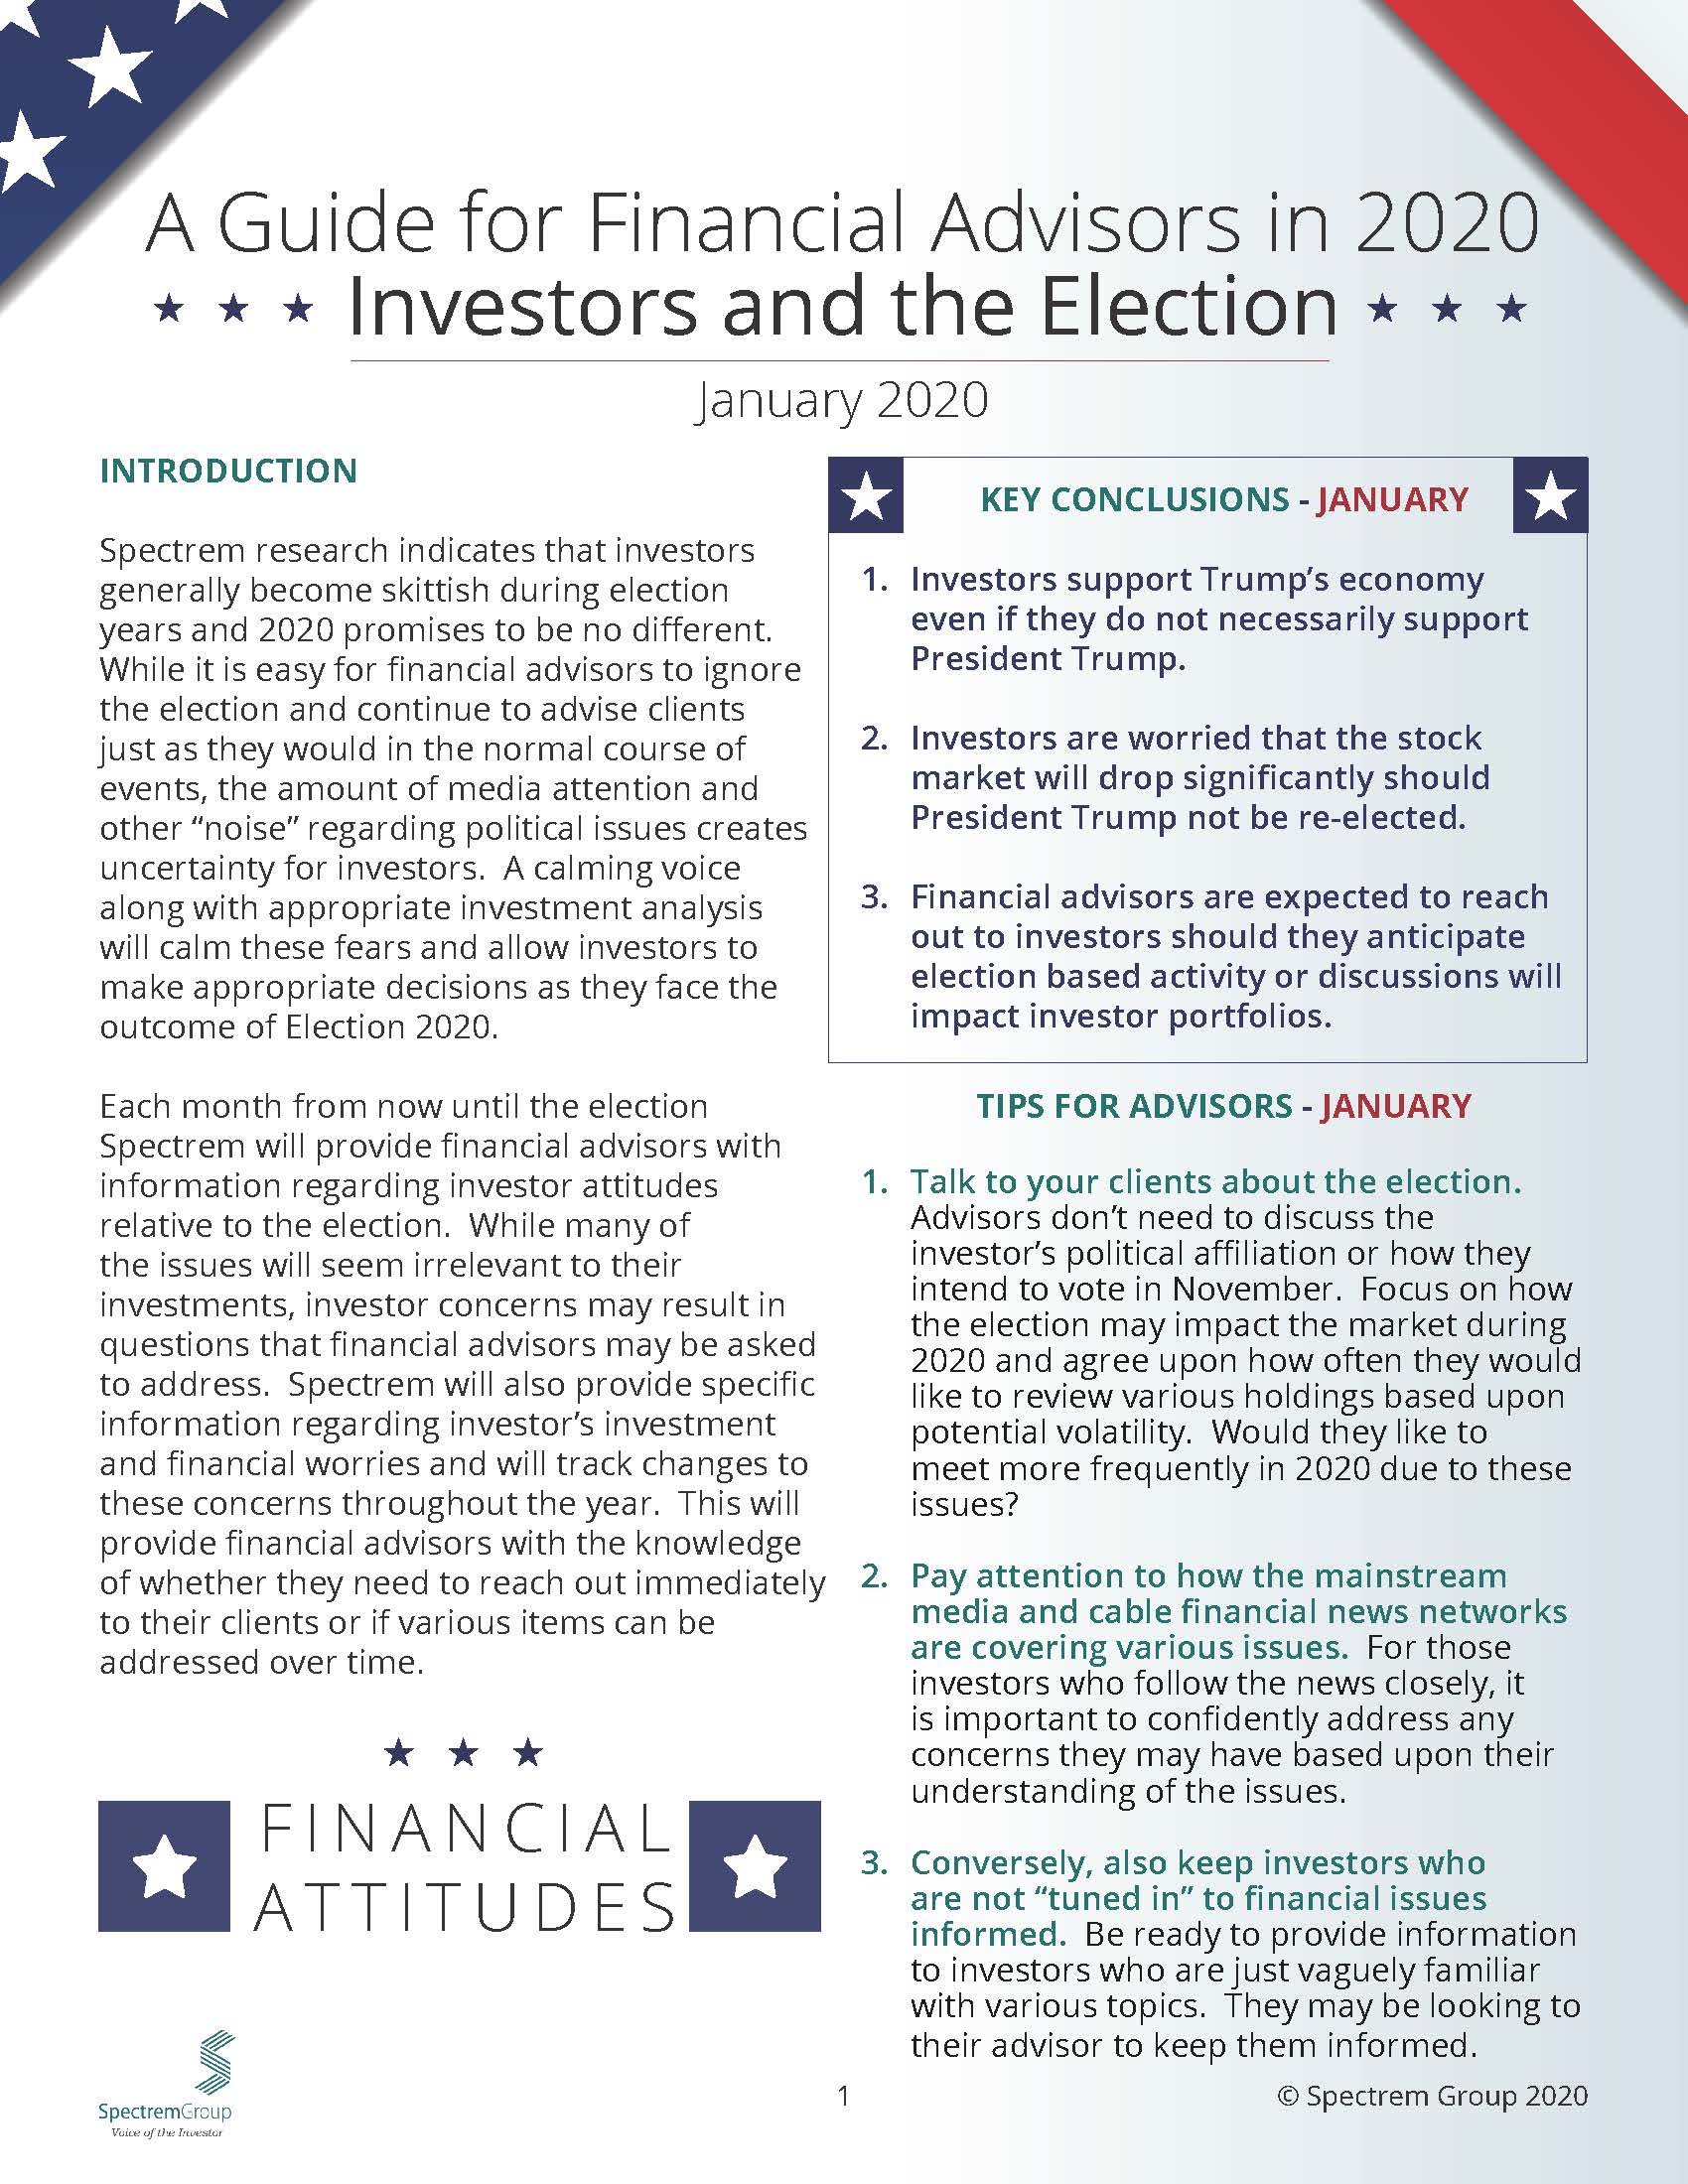 Wealthy Investors and the Election: A Guide for Financial Advisors in 2020 - January